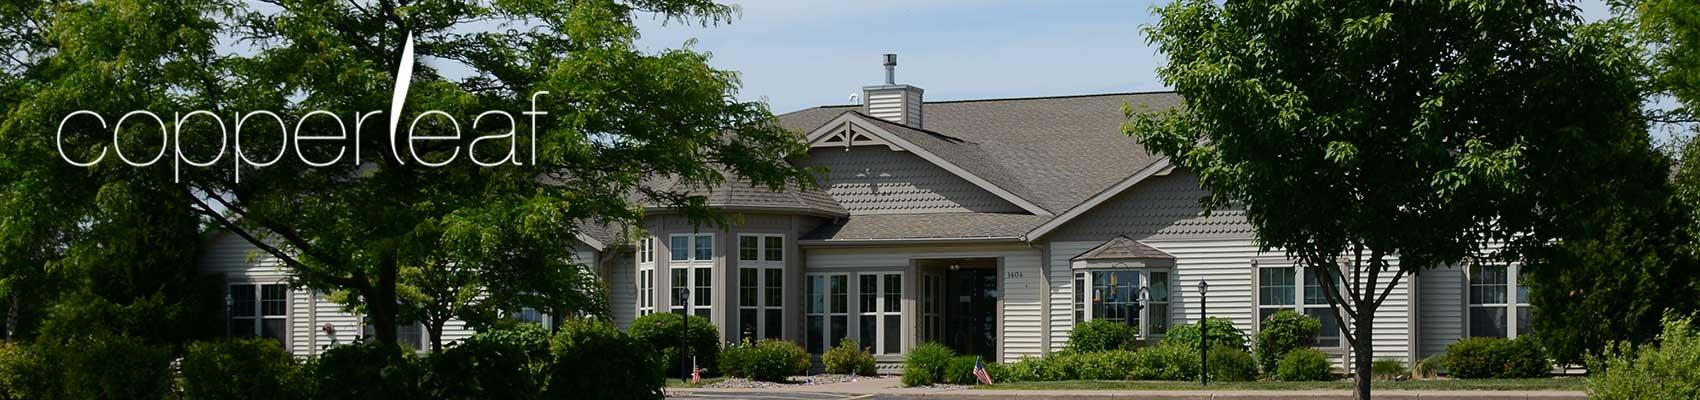 Assisted Living assisted living facilities New Hope Wisconsin Portage County